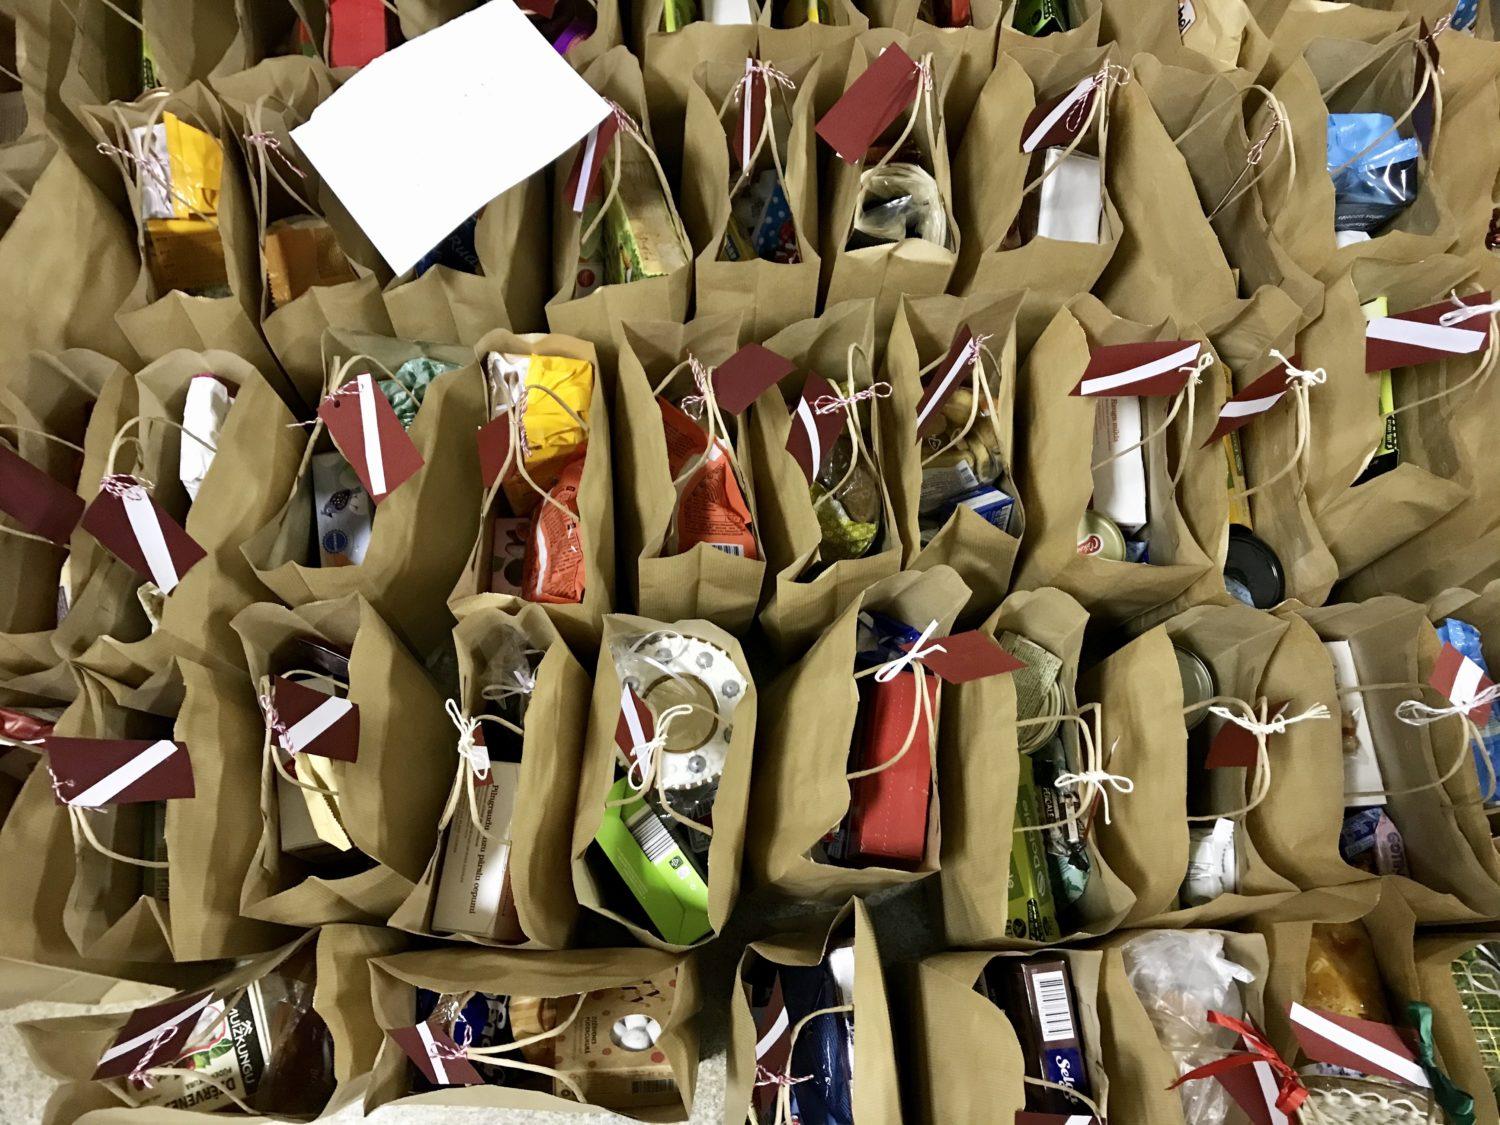 food packs for elderly and vulnerable